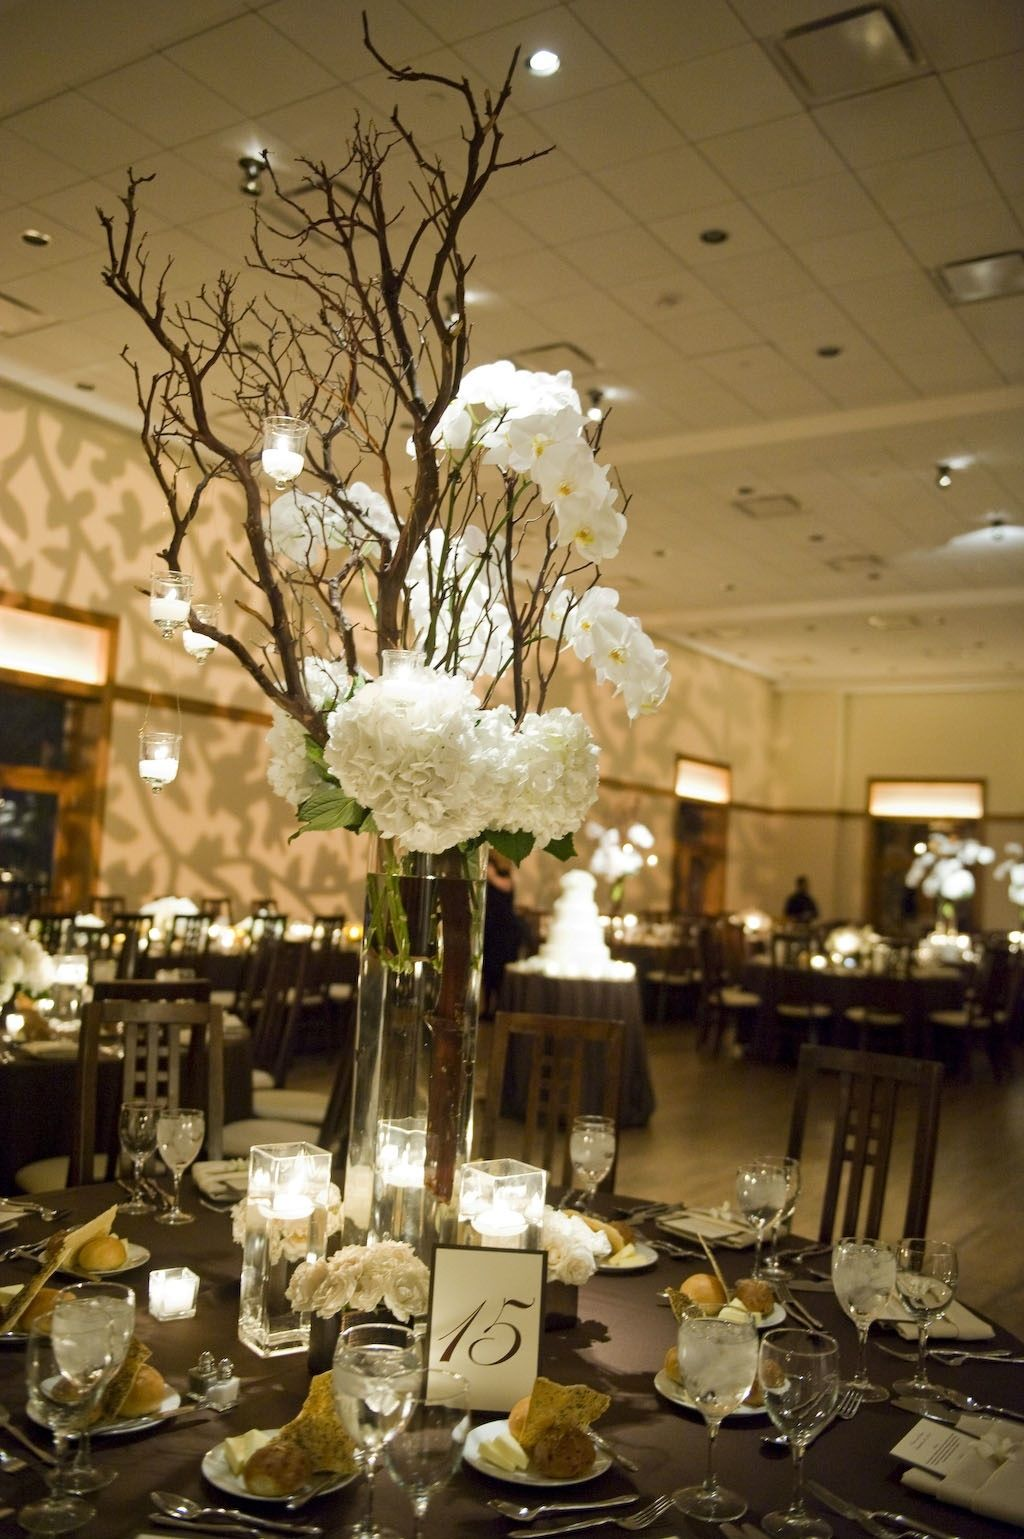 Some centerpieces will be in tall vases with branches n for Tall wedding centerpieces with branches